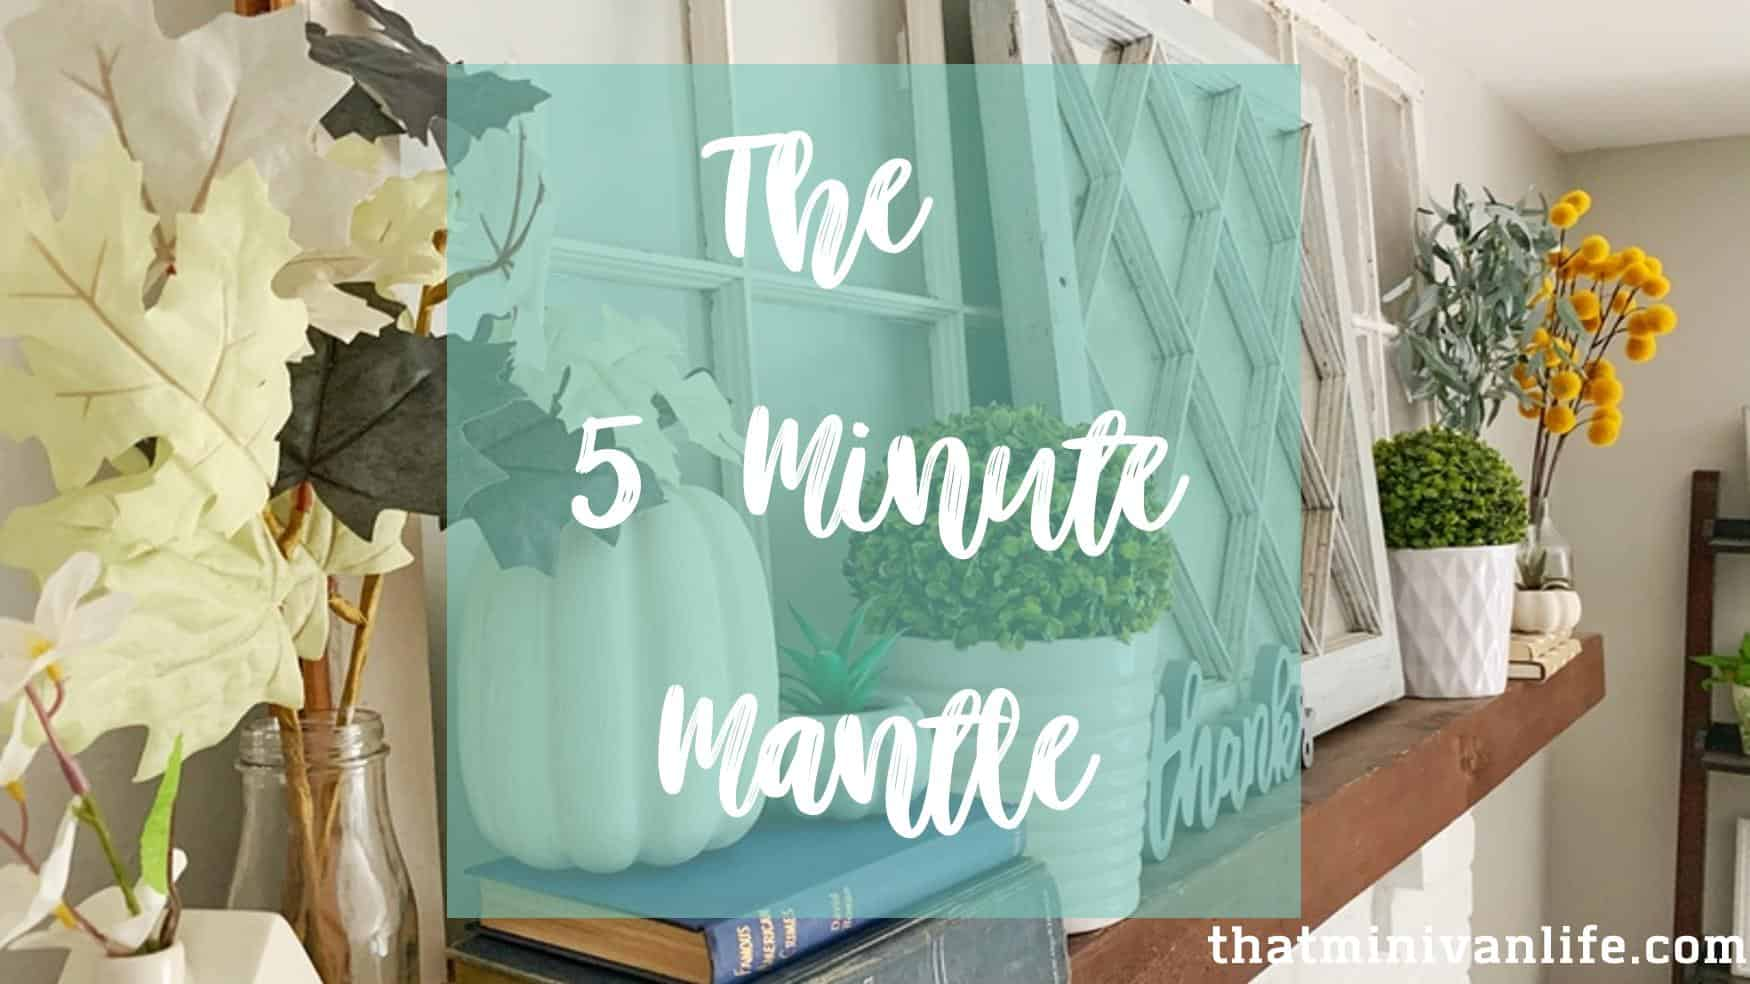 The 5 Minute Mantle banner